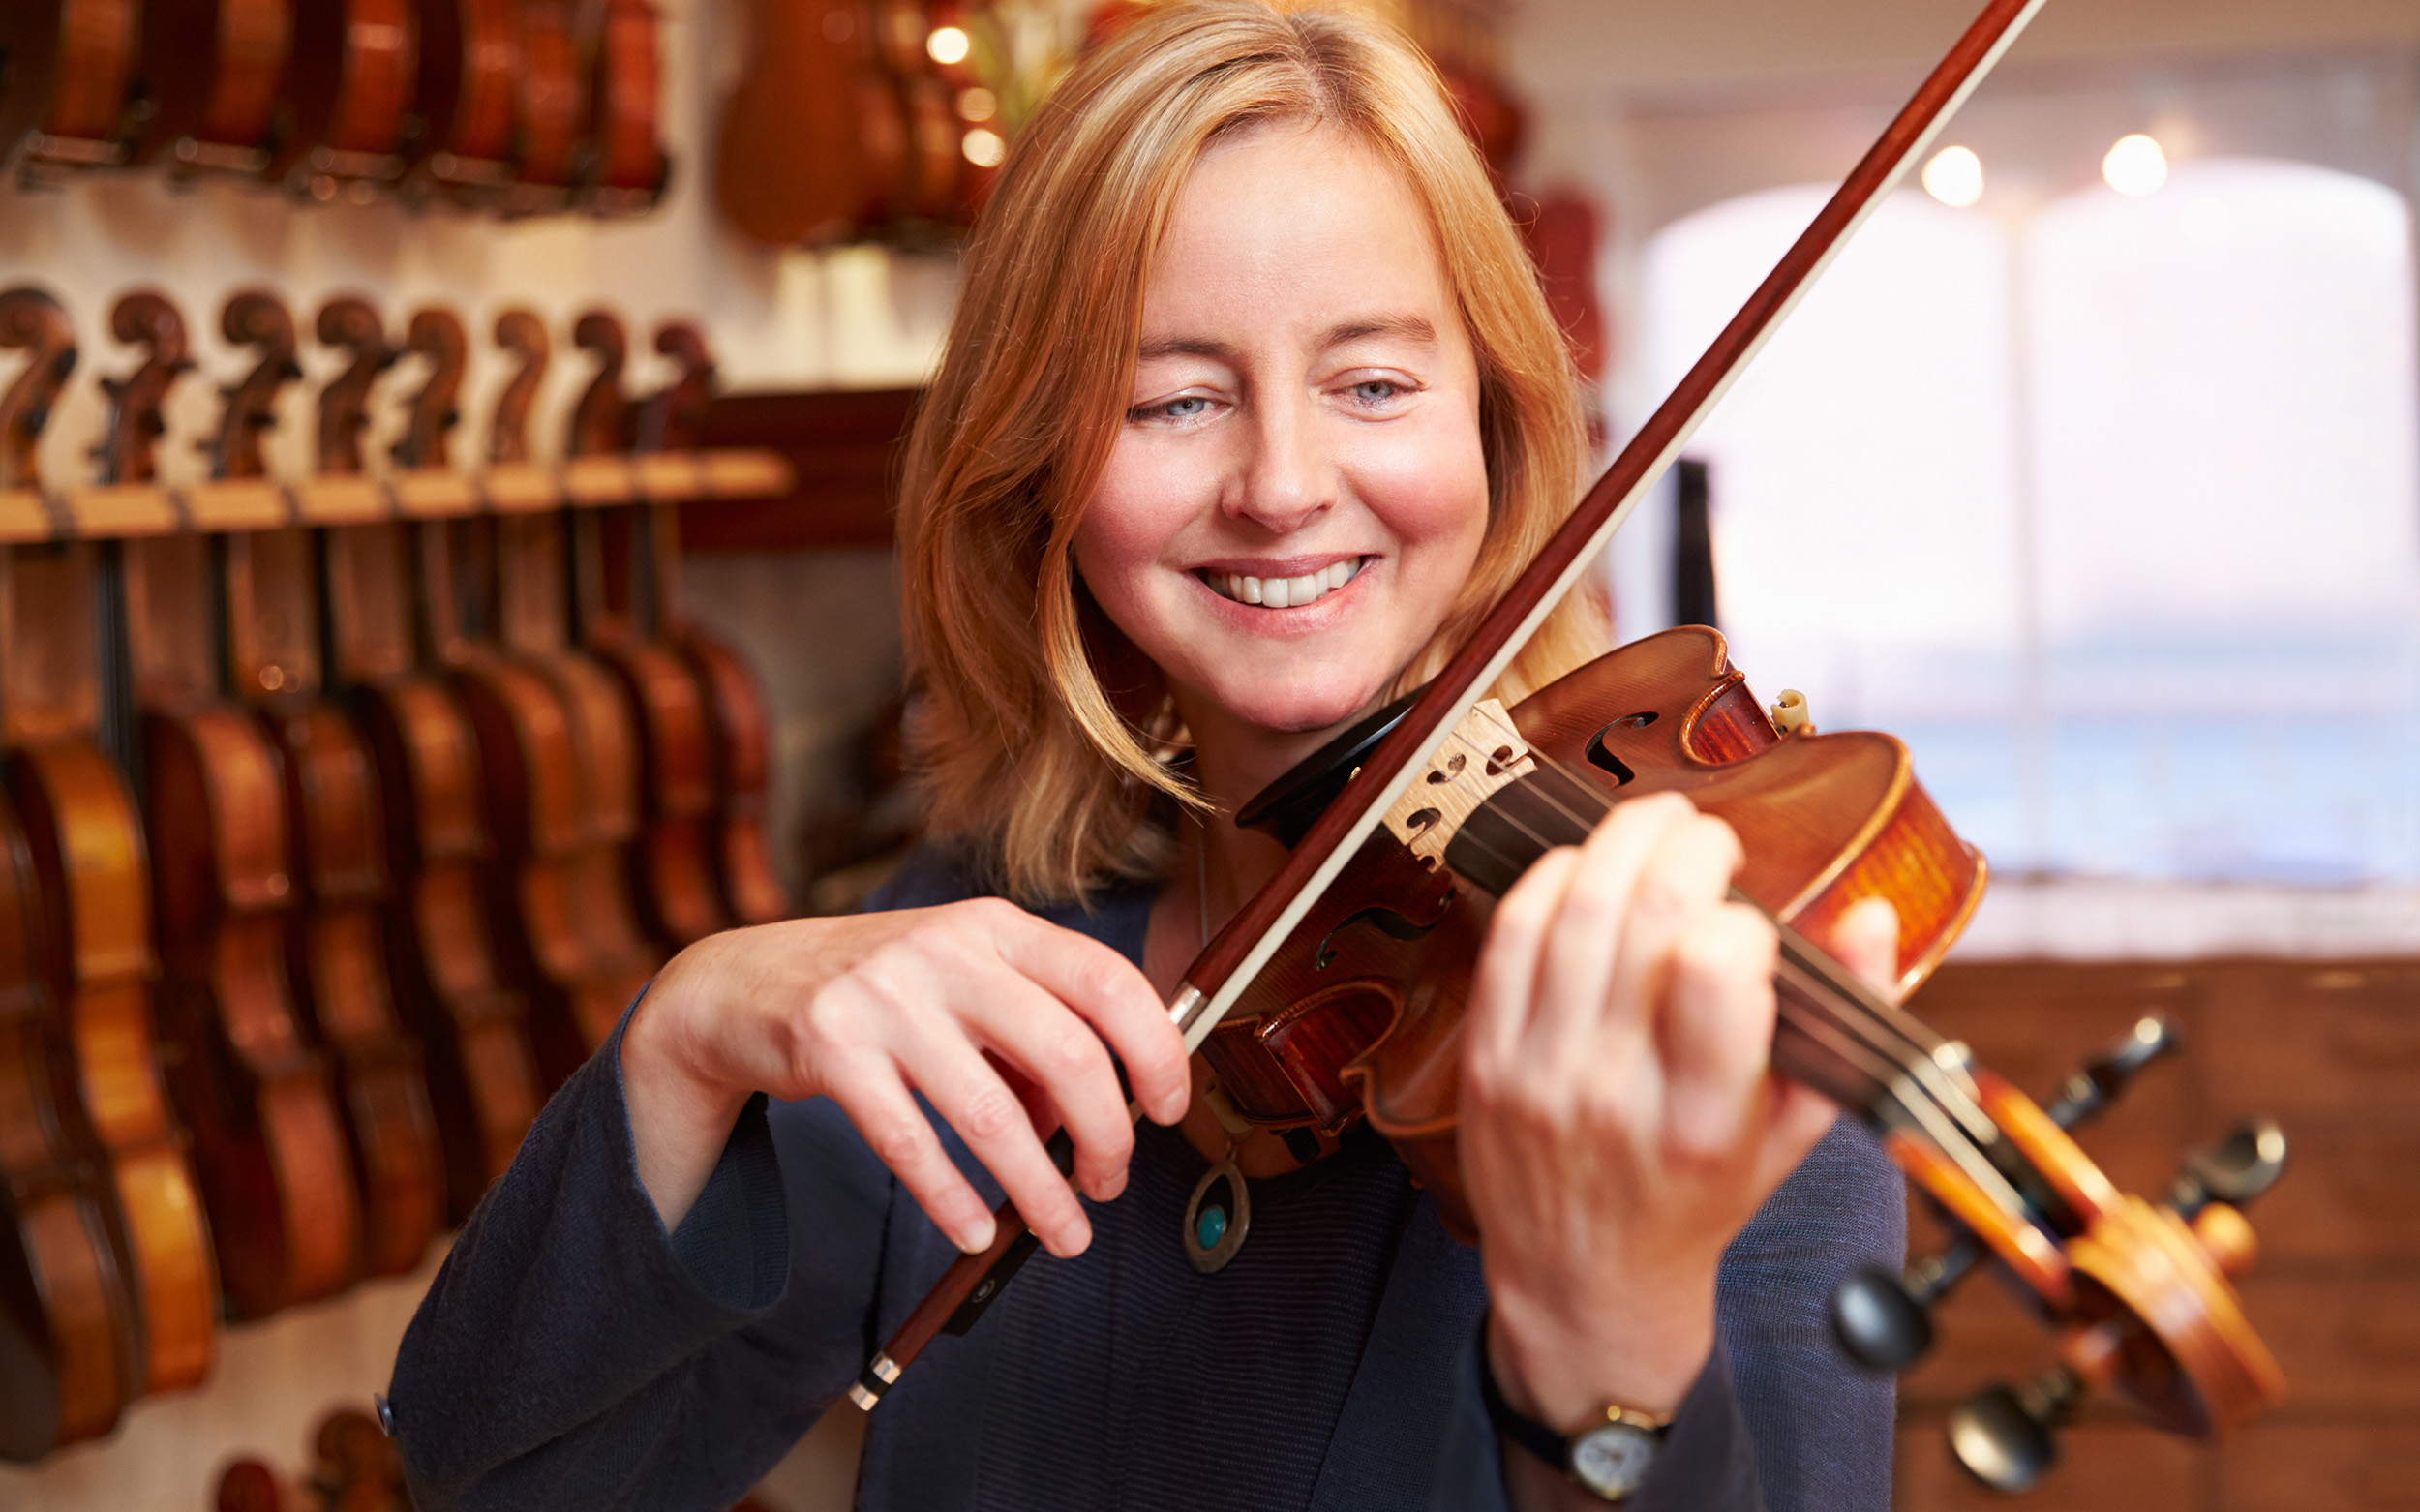 strawberry blond 40-something woman smiling while playing violin with many others in the background